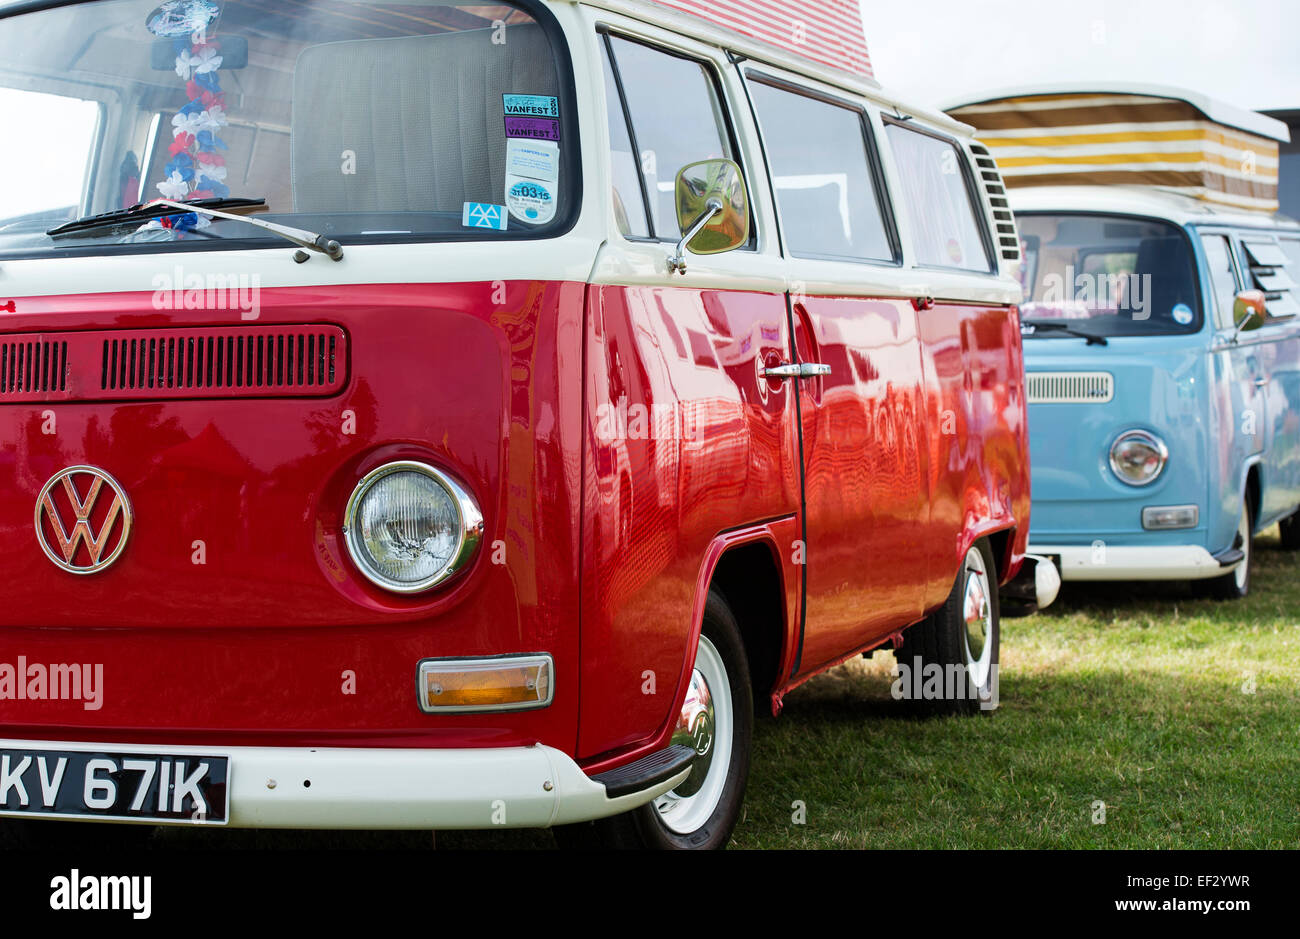 Two VW campervans. UK - Stock Image